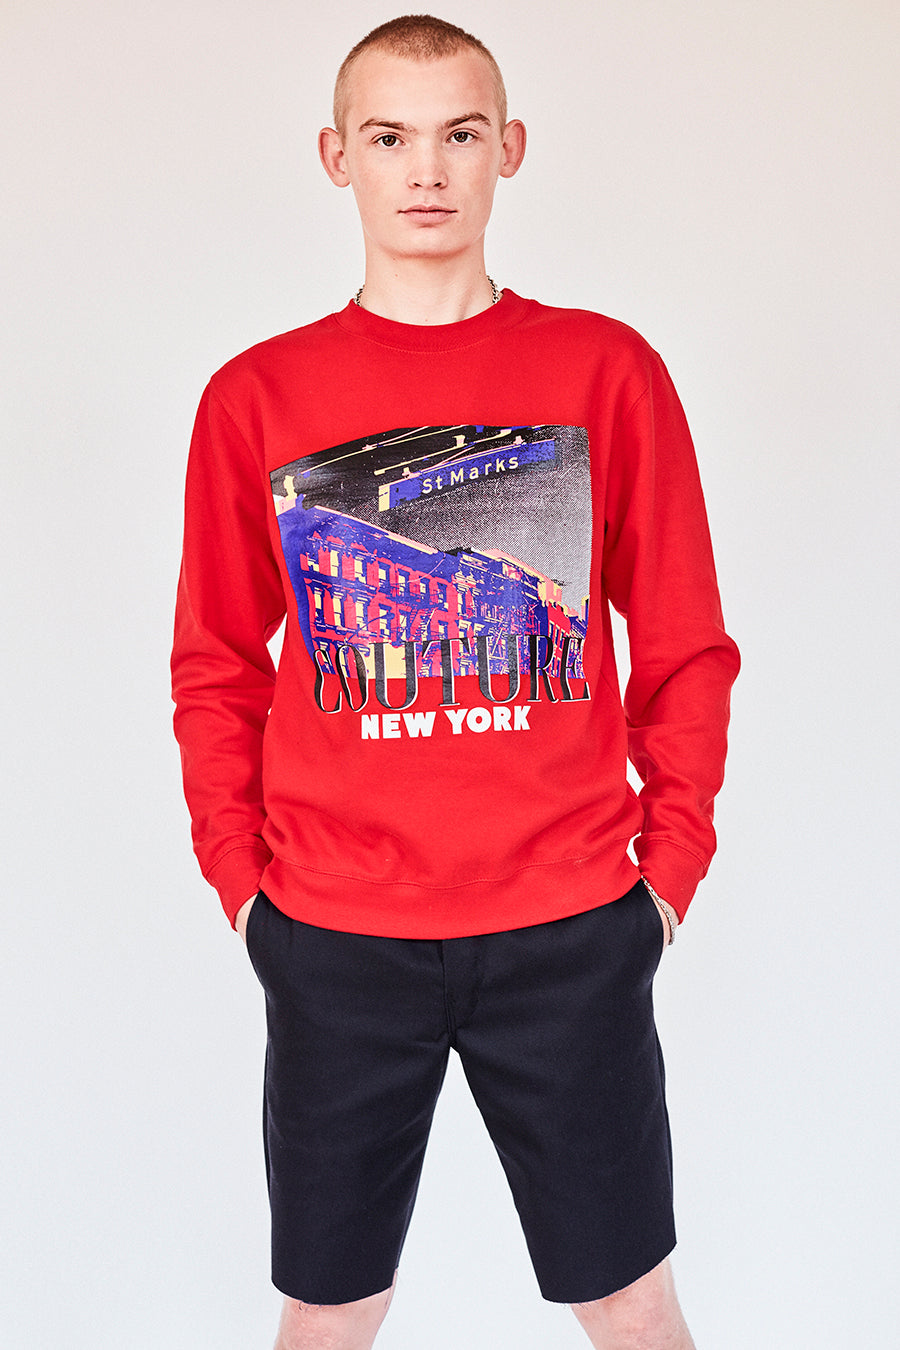 Brand New from New York City: Stmarksnewyork.com  Shop the St. Marks Street Sign red sweatshirt: Featuring St. Marks Street sign image on the front and St. Marks Couture New York logo on the back.  Hand silkscreen printed in New York with love.